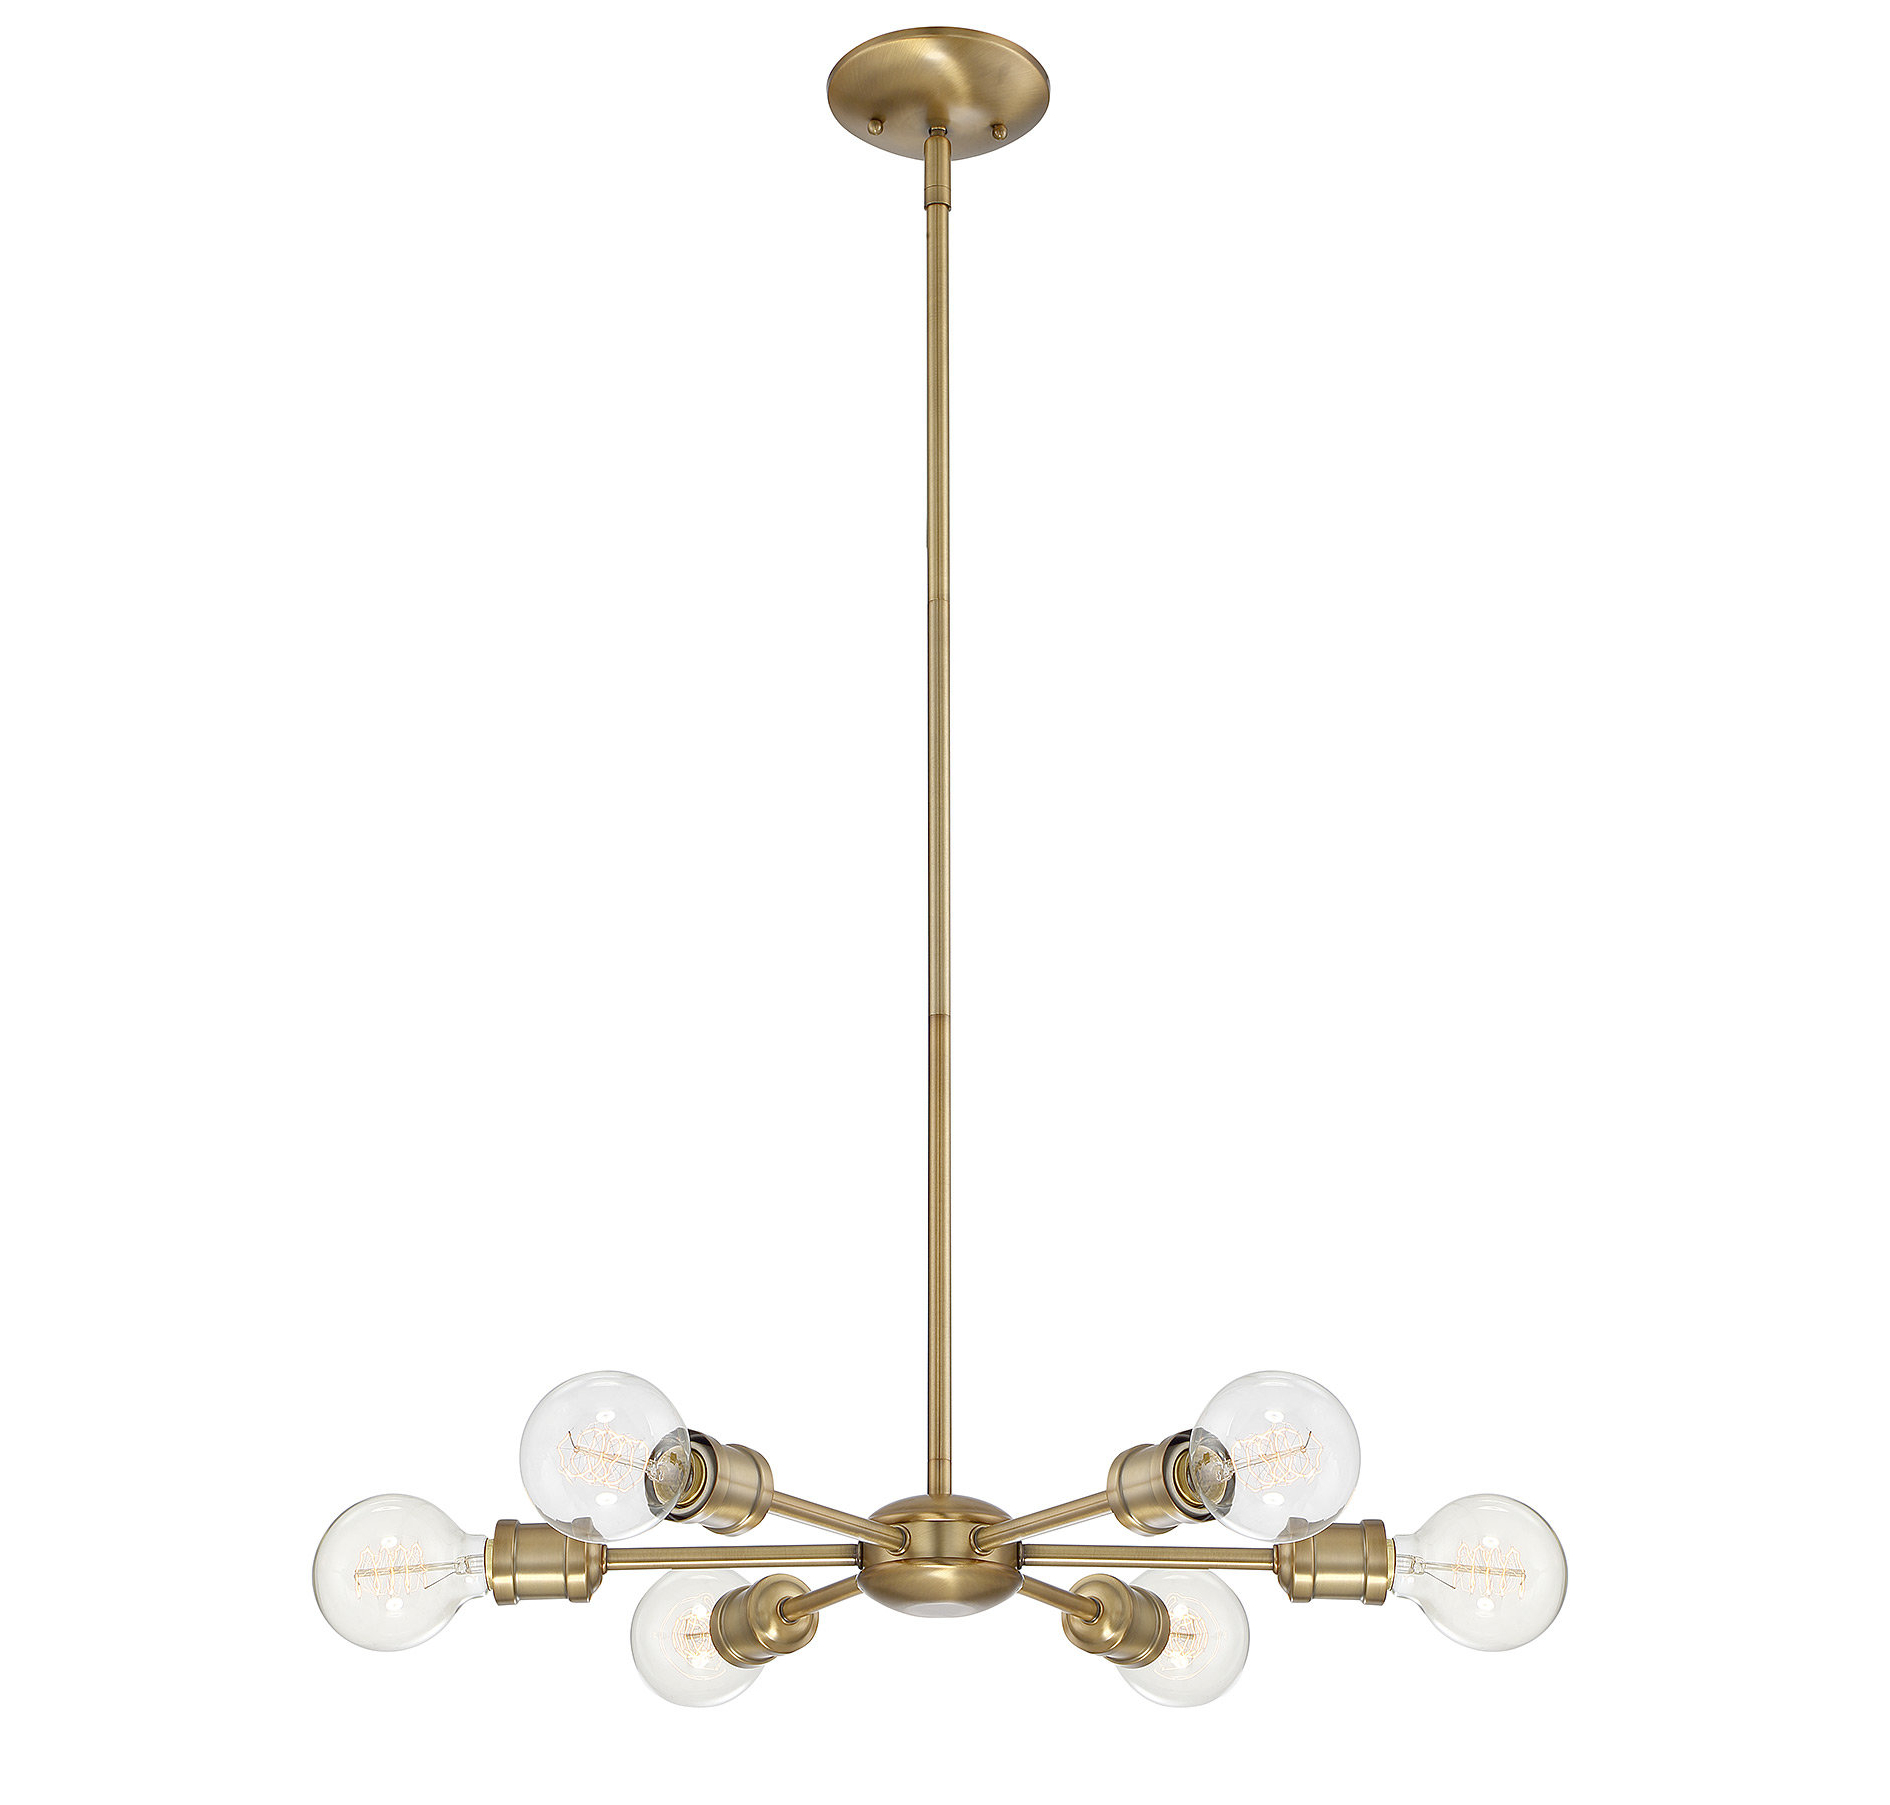 2020 Bautista 6-Light Sputnik Chandelier pertaining to Bautista 6-Light Sputnik Chandeliers